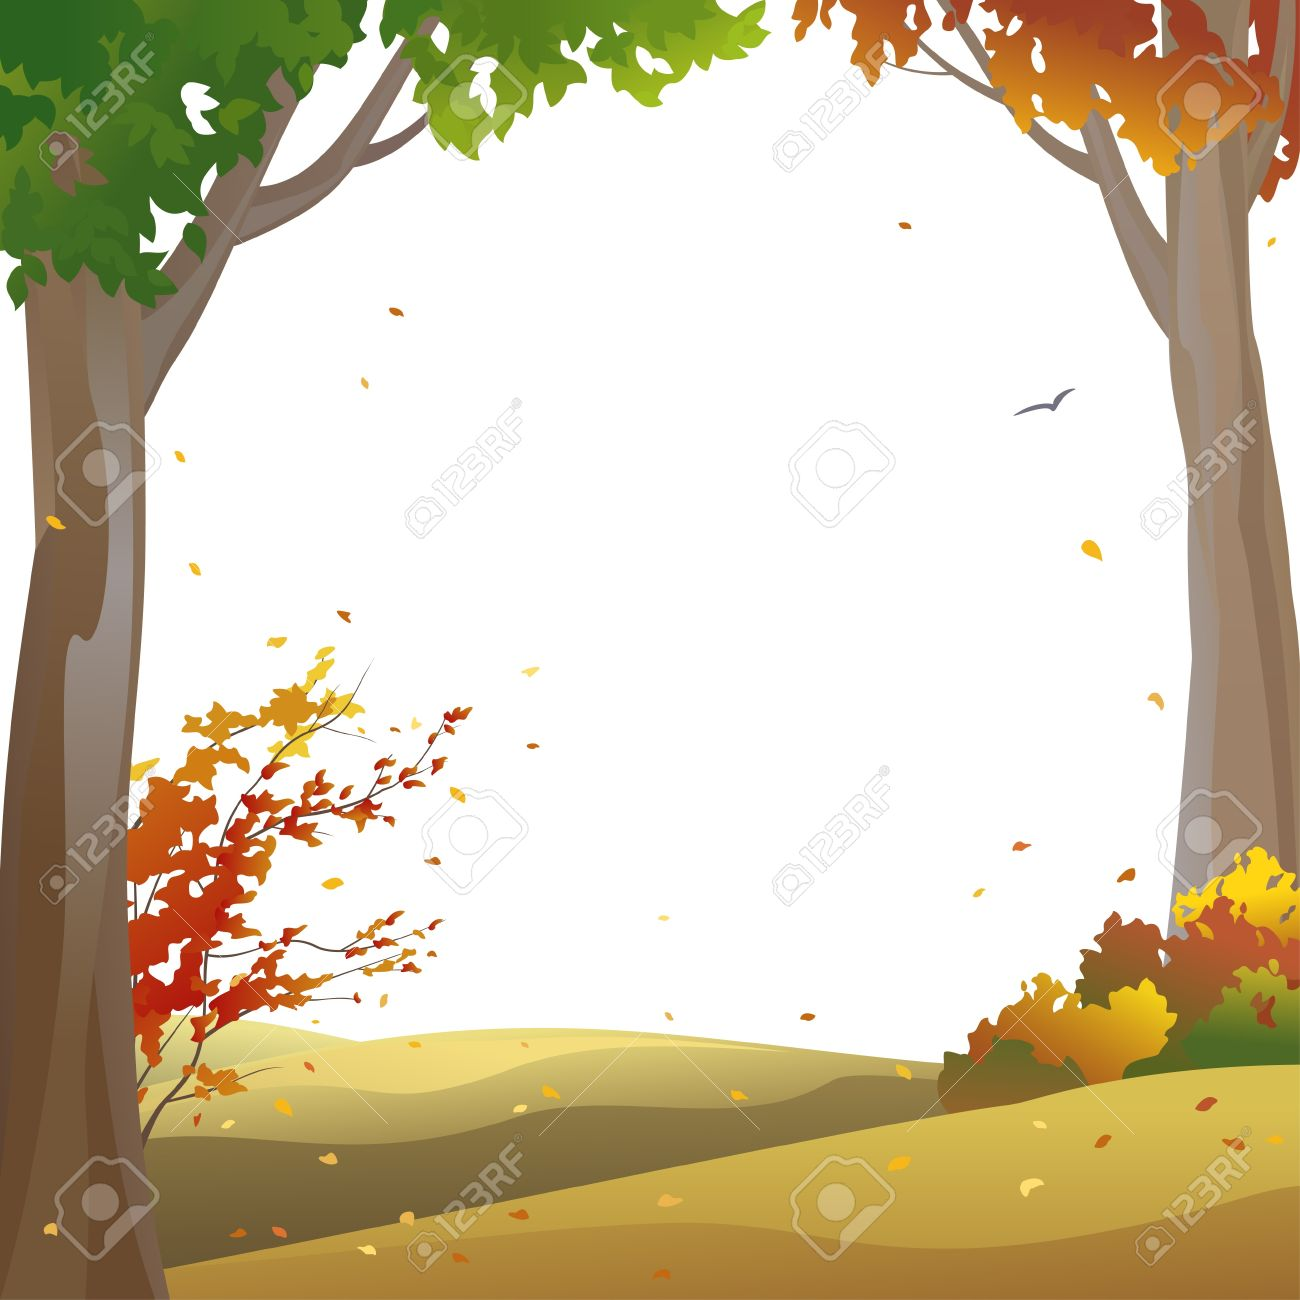 Vector background with autumn .-Vector background with autumn .-19